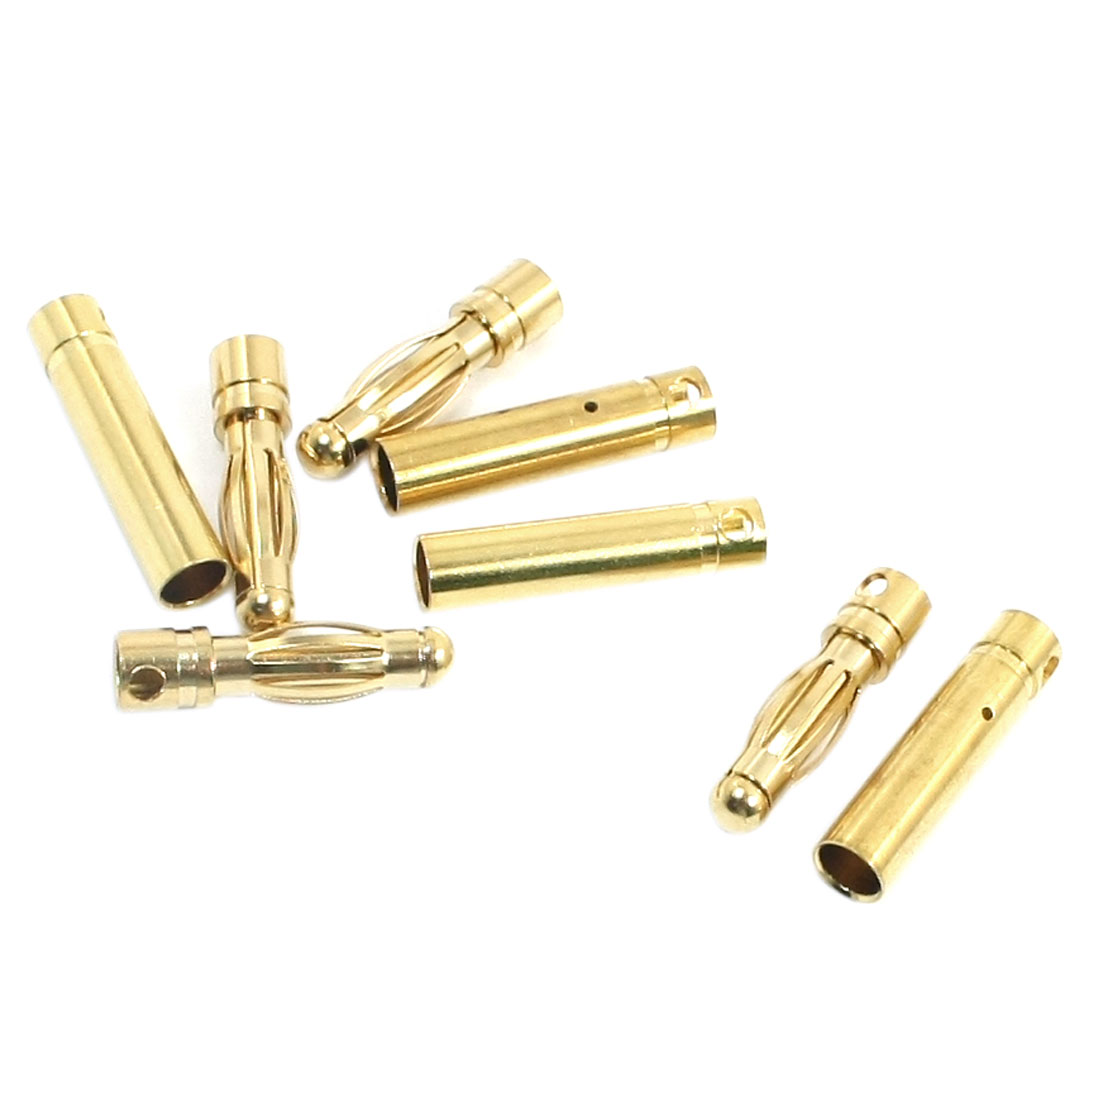 RC Model Brushless Motor Li-Po Battery Part Gold Tone Metal Male Female Banana Connector Adapter 4mm 4 Pair